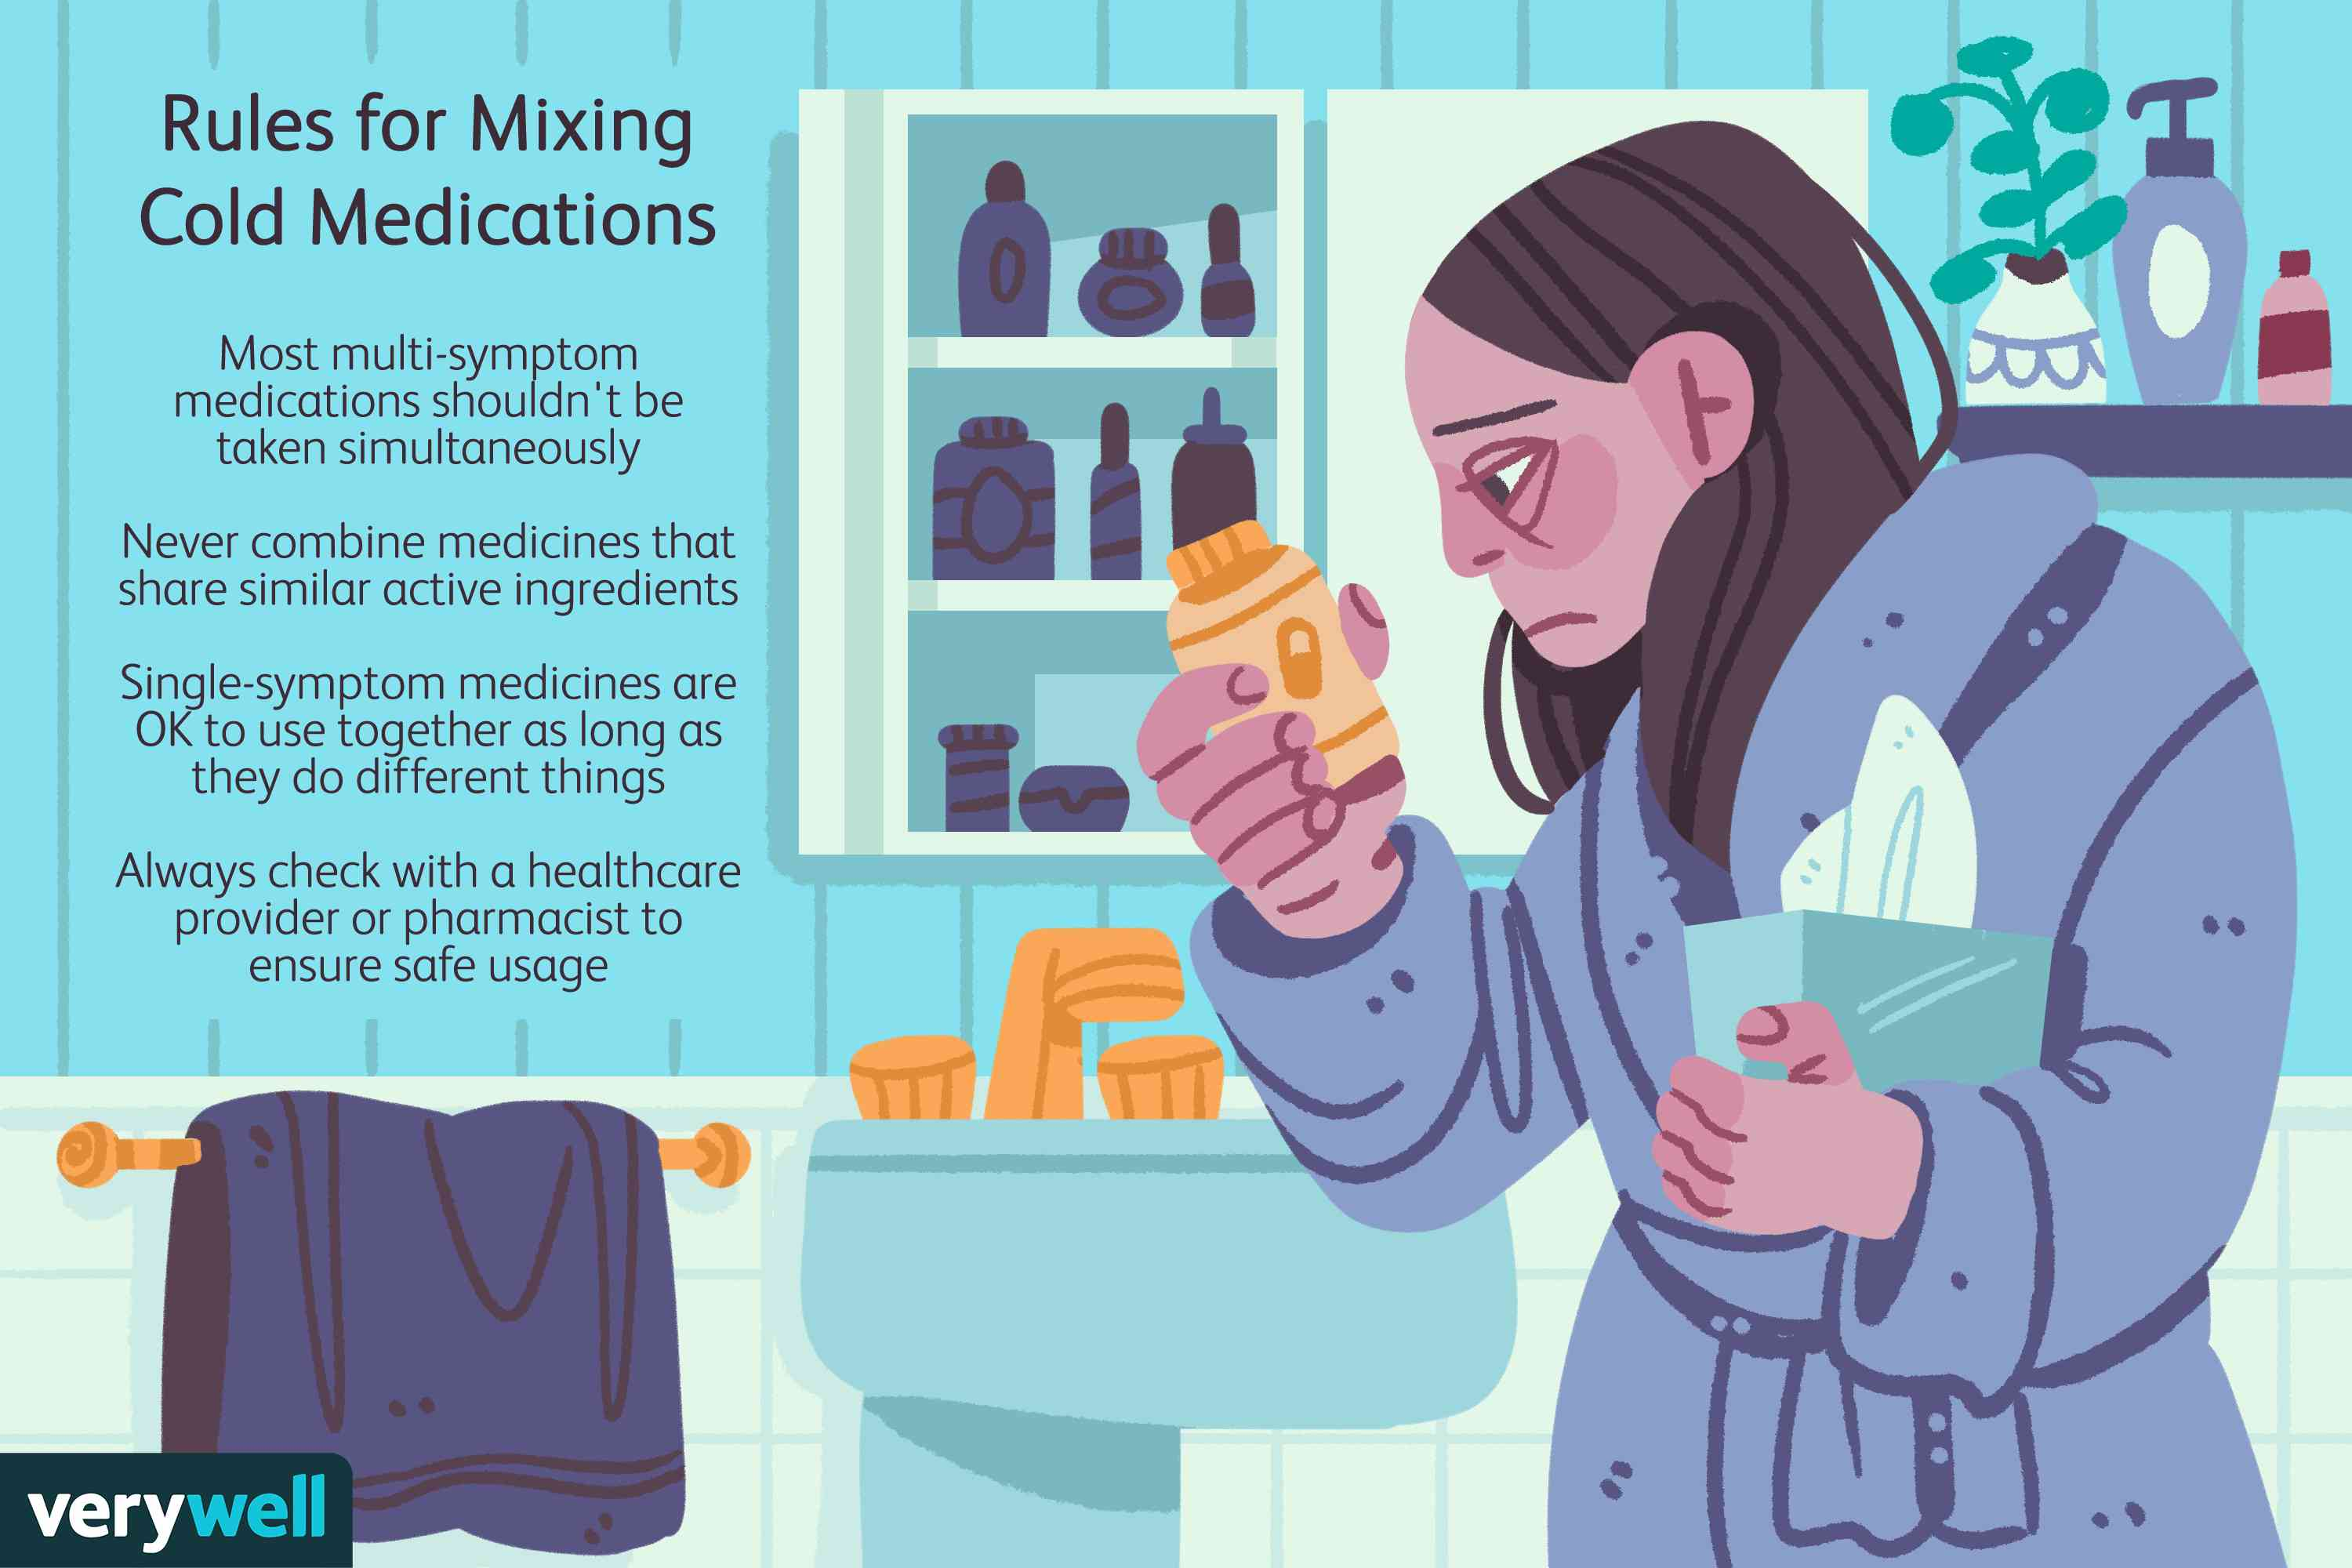 Rules for Mixing Cold Medications